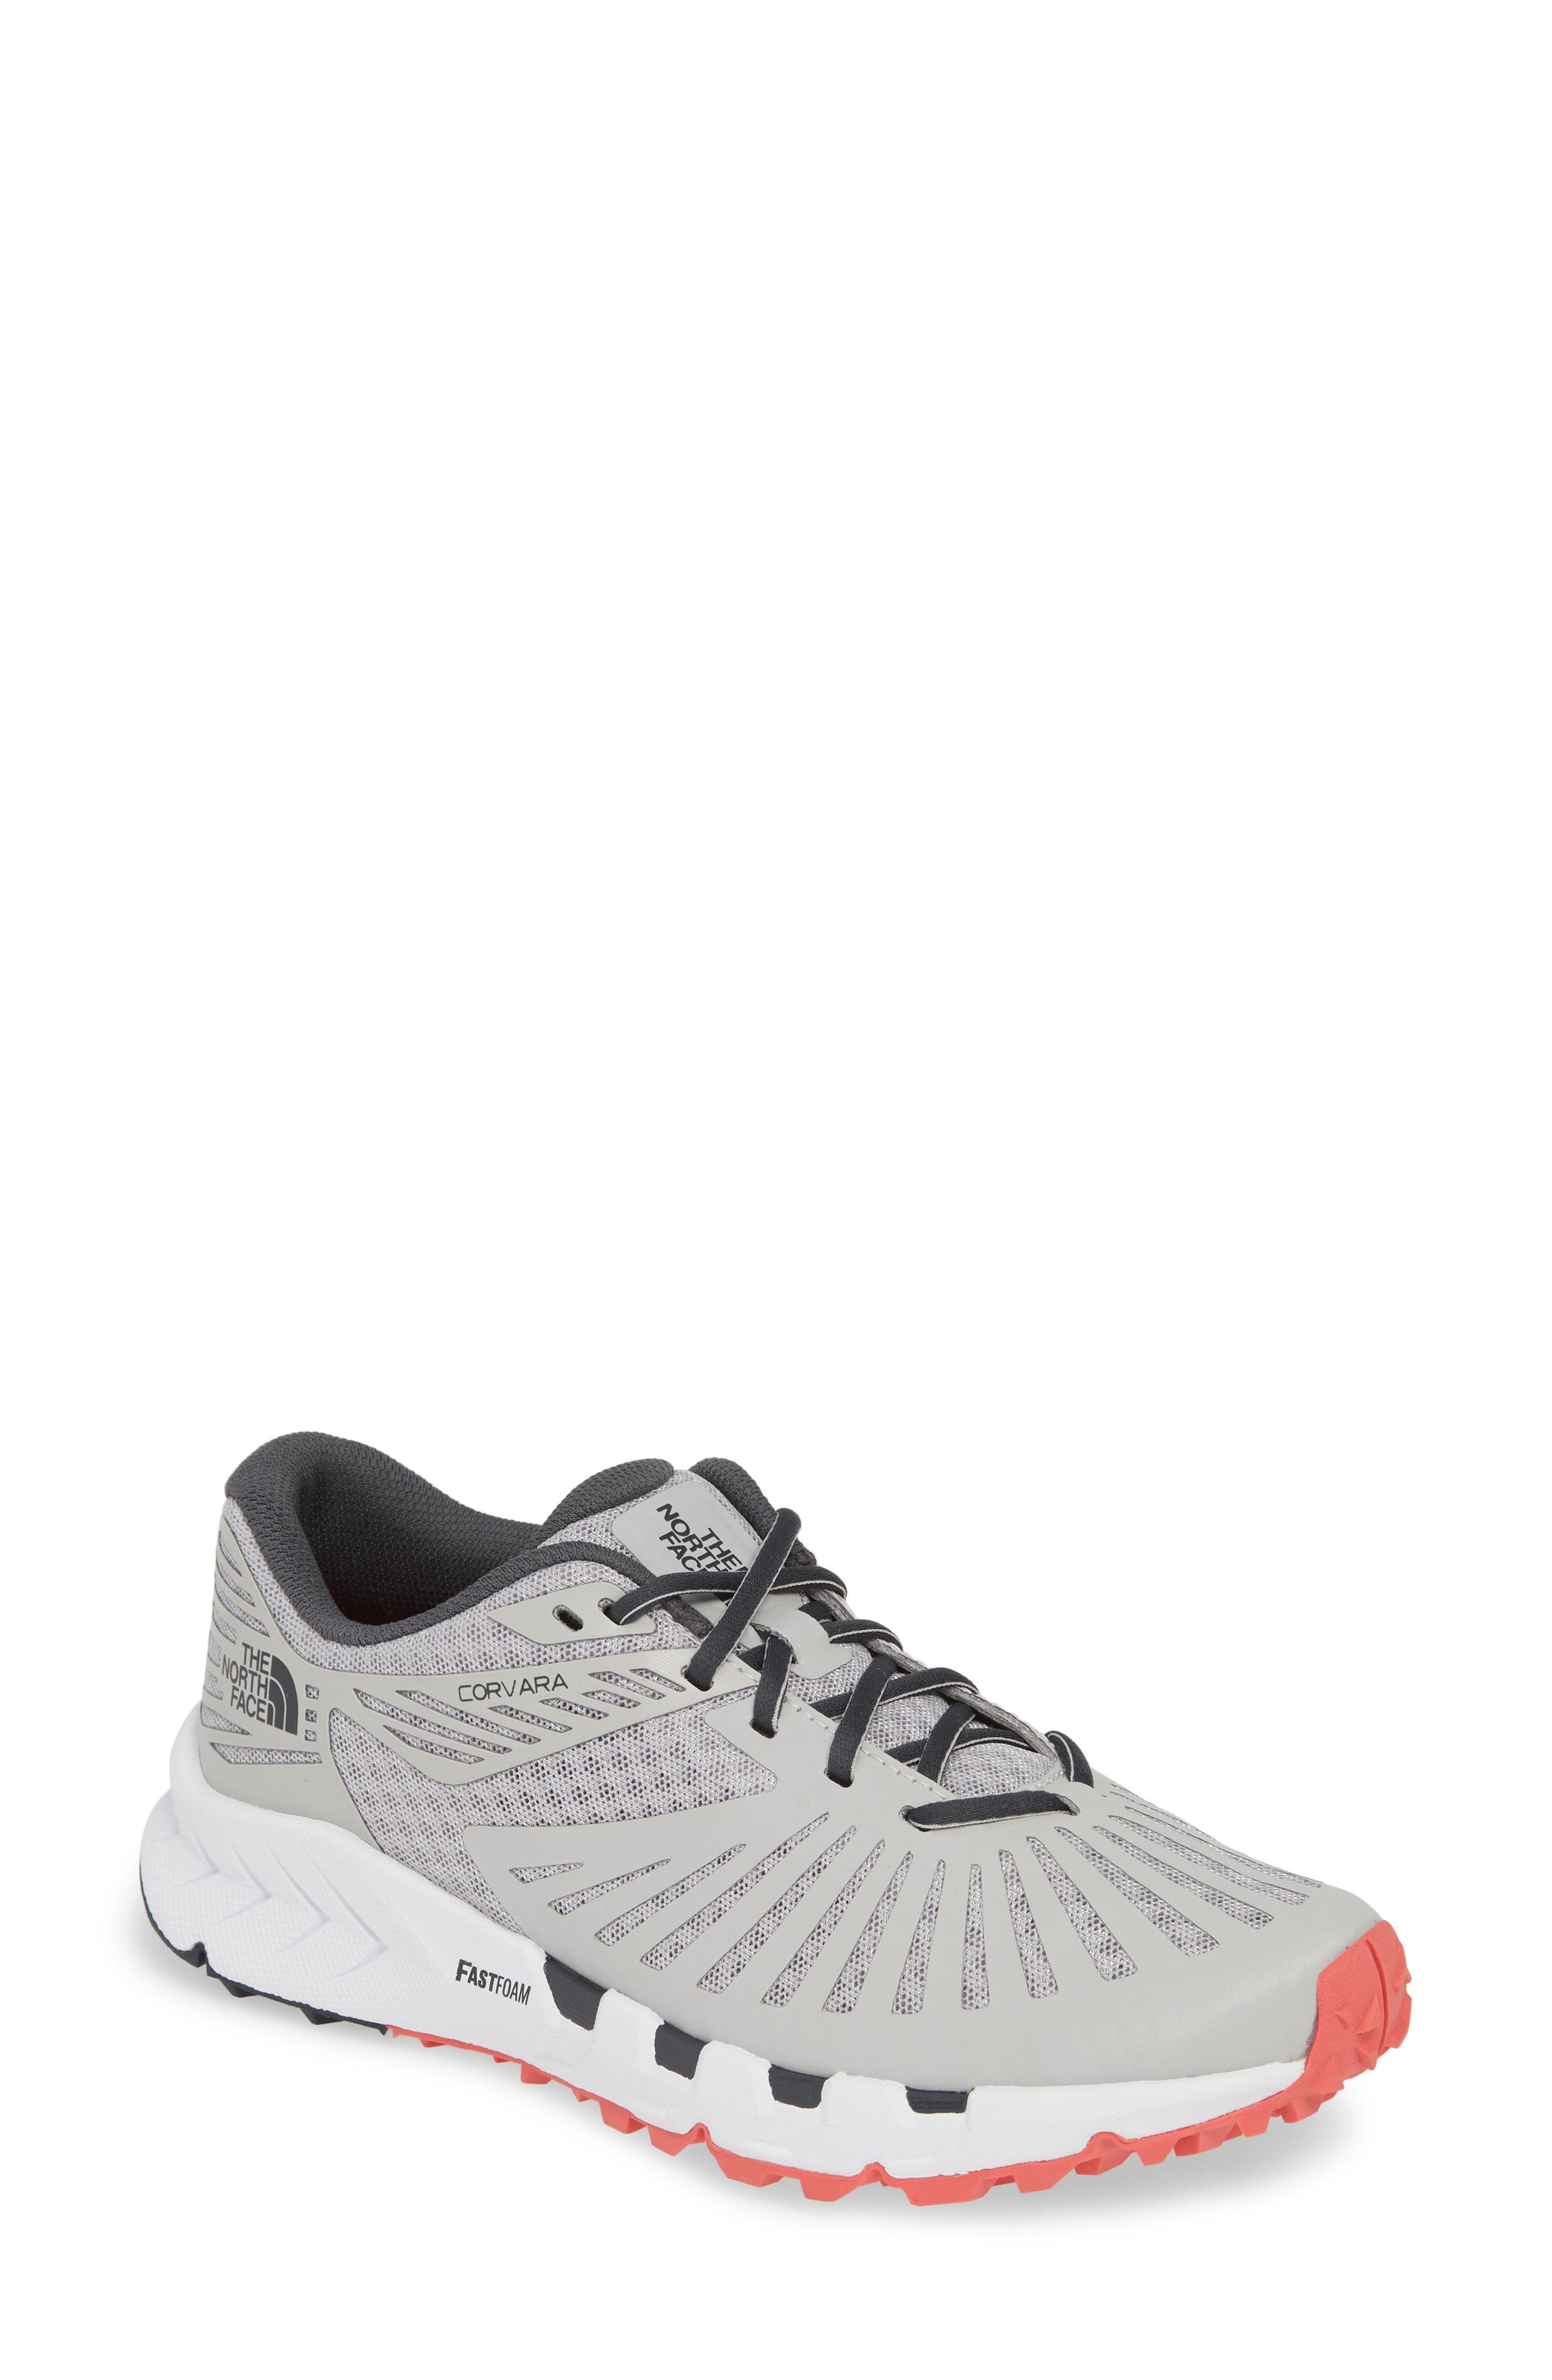 87a2cd4f3 Lyst - The North Face Corvara Trail Running Sneaker in Gray